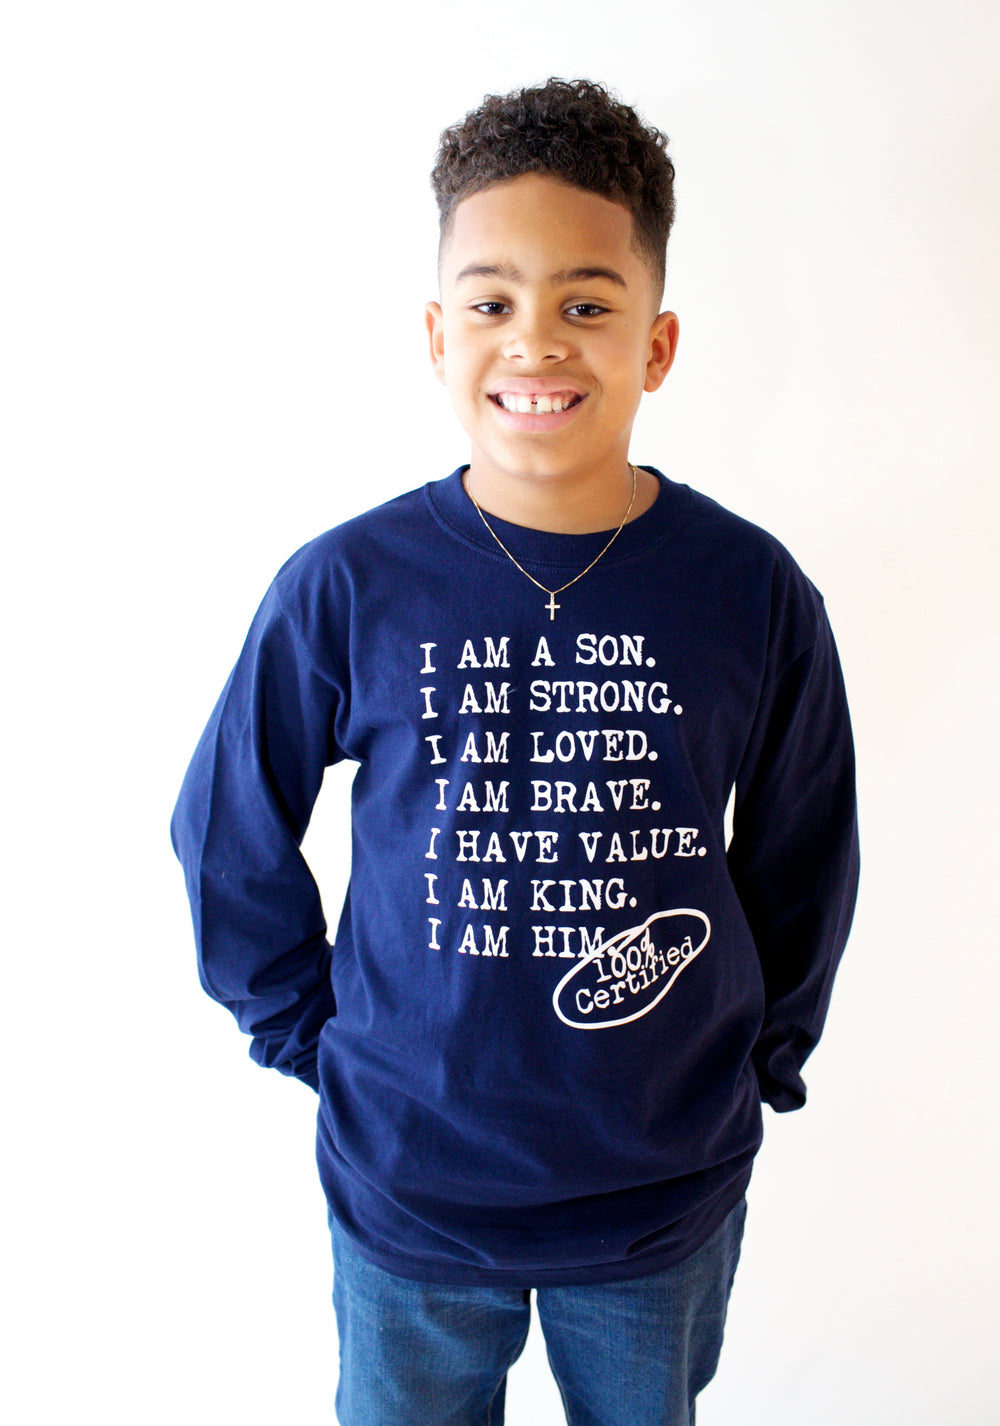 Boy wearing navy Longsleeve for boys with saying, I AM A SON. I AM STRONG. I AM LOVED. I AM STRONG. I AM BRAVE. I AM VALUED. I AM KING. I AM HIM -­‐ 100% CERTIFIED. Boys clothing for him because it is never too early or too late for him to know his value and worth.